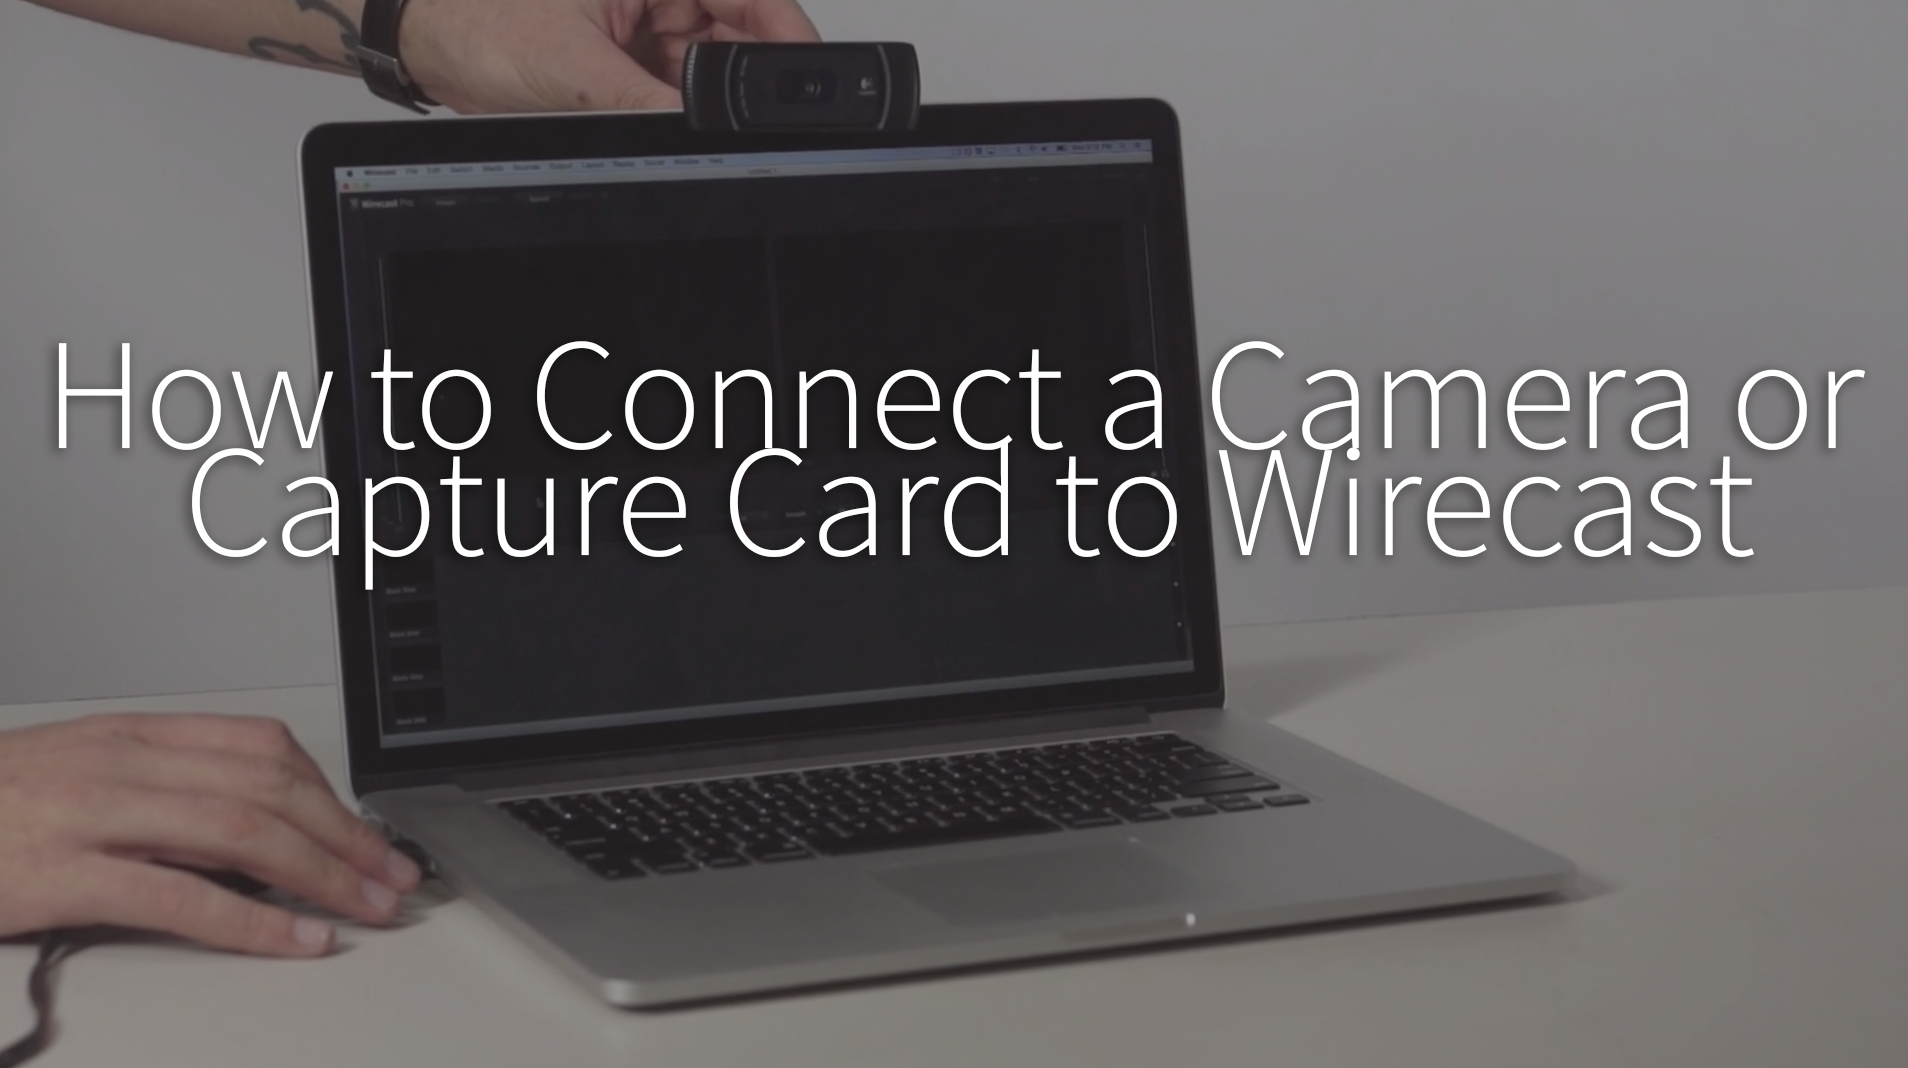 How to Connect a Camera or Capture Card to Wirecast